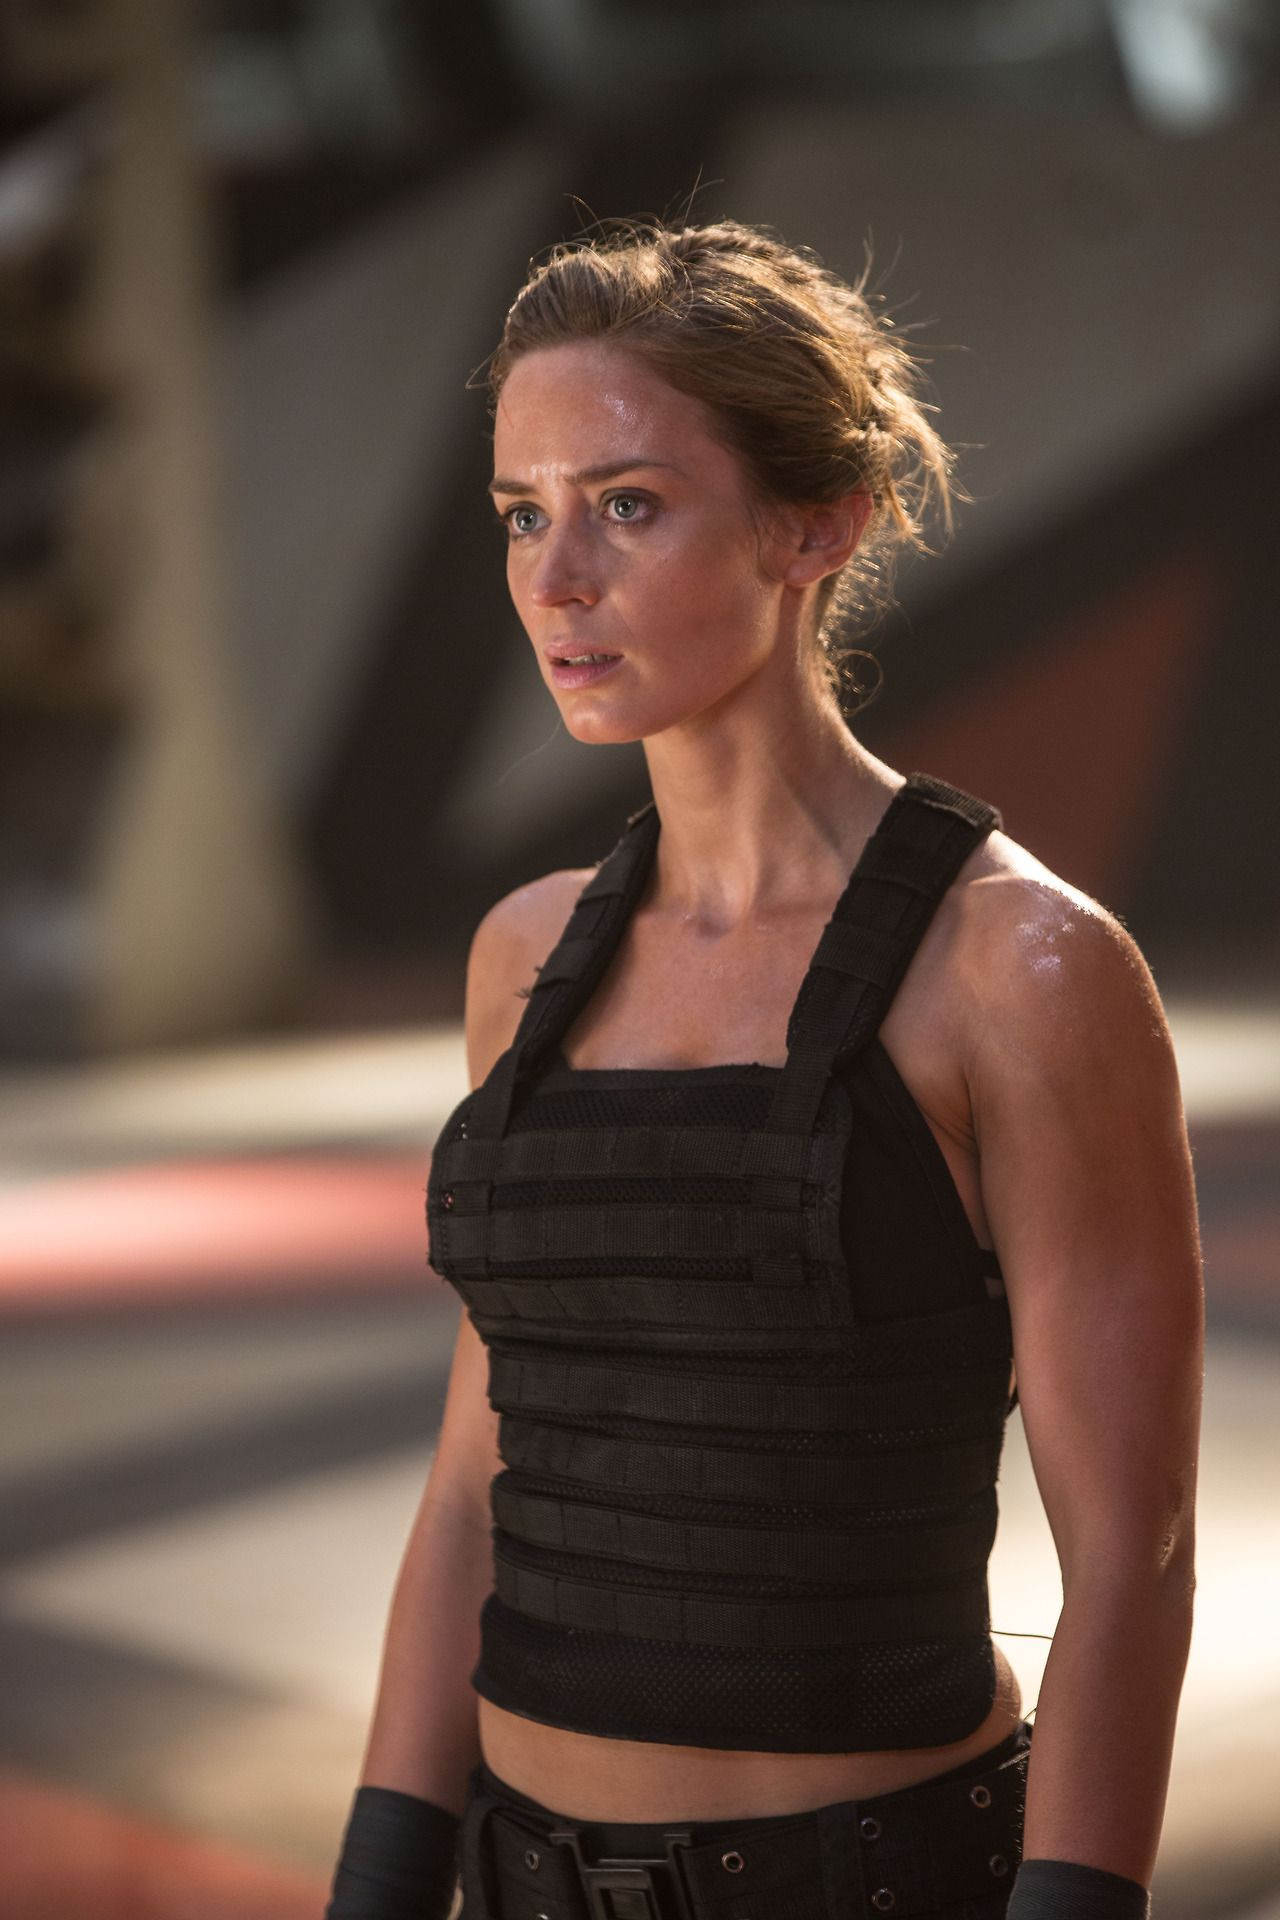 Emily Blunt Edge Of Tomorrow 2014 1280 1920 Emily Blunt